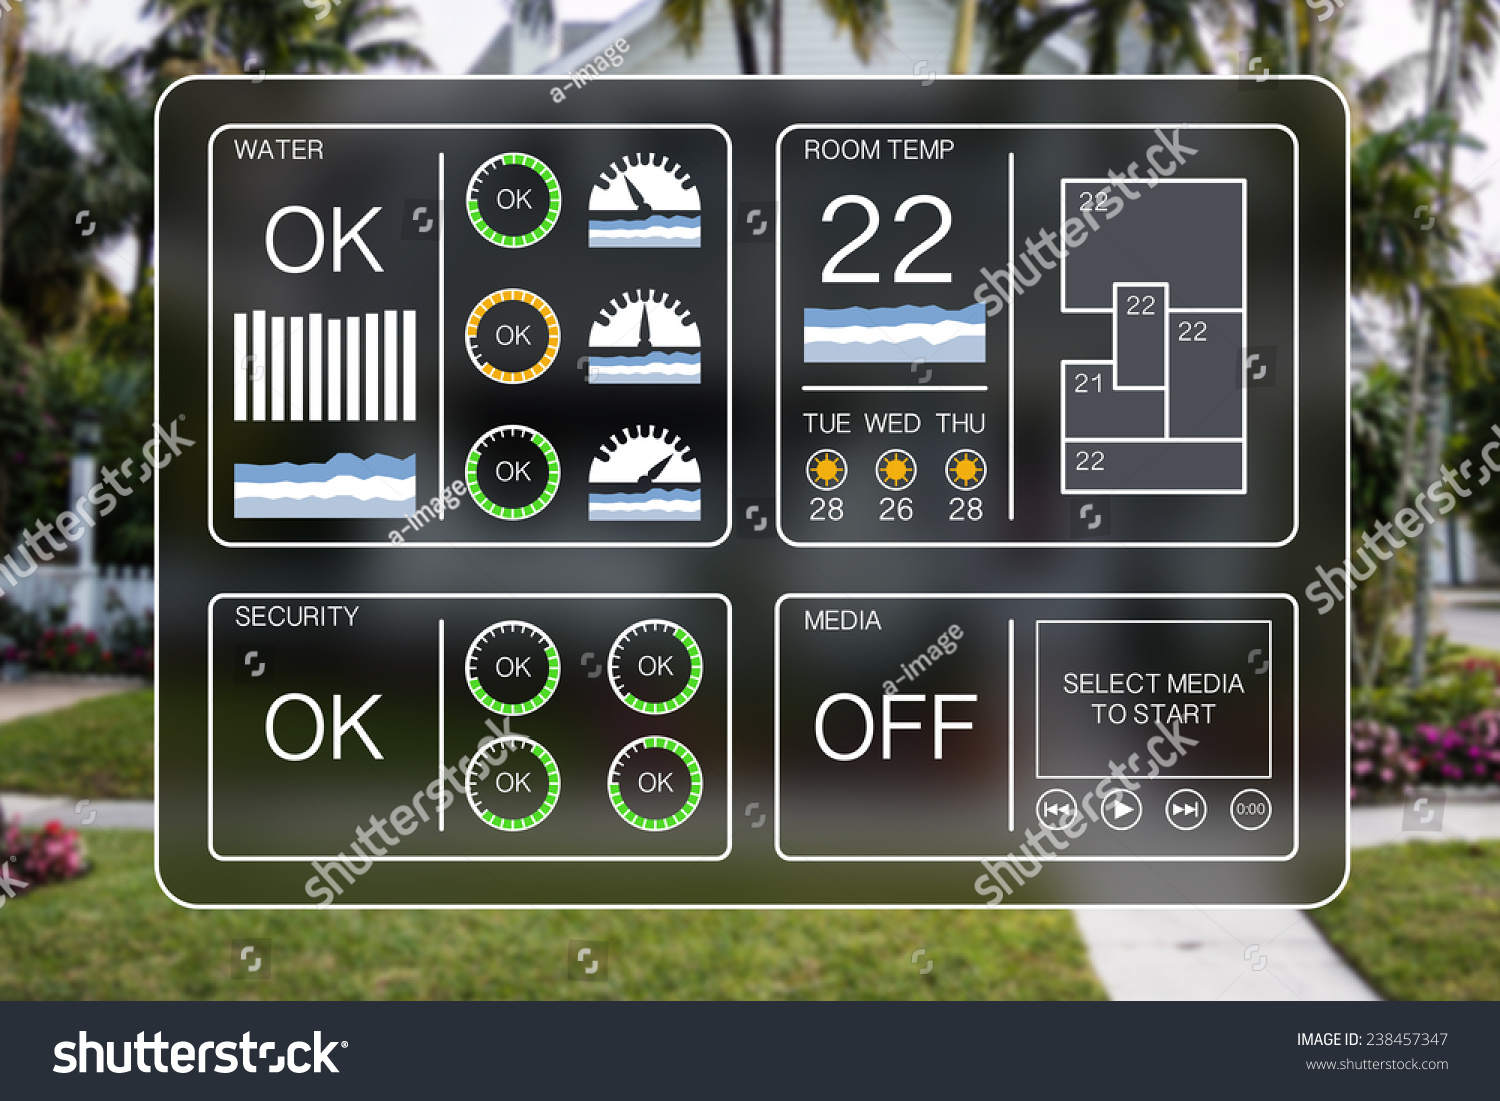 flat design illustration of a home automation dashboard to control home appliances like water heating - Home Automation Design